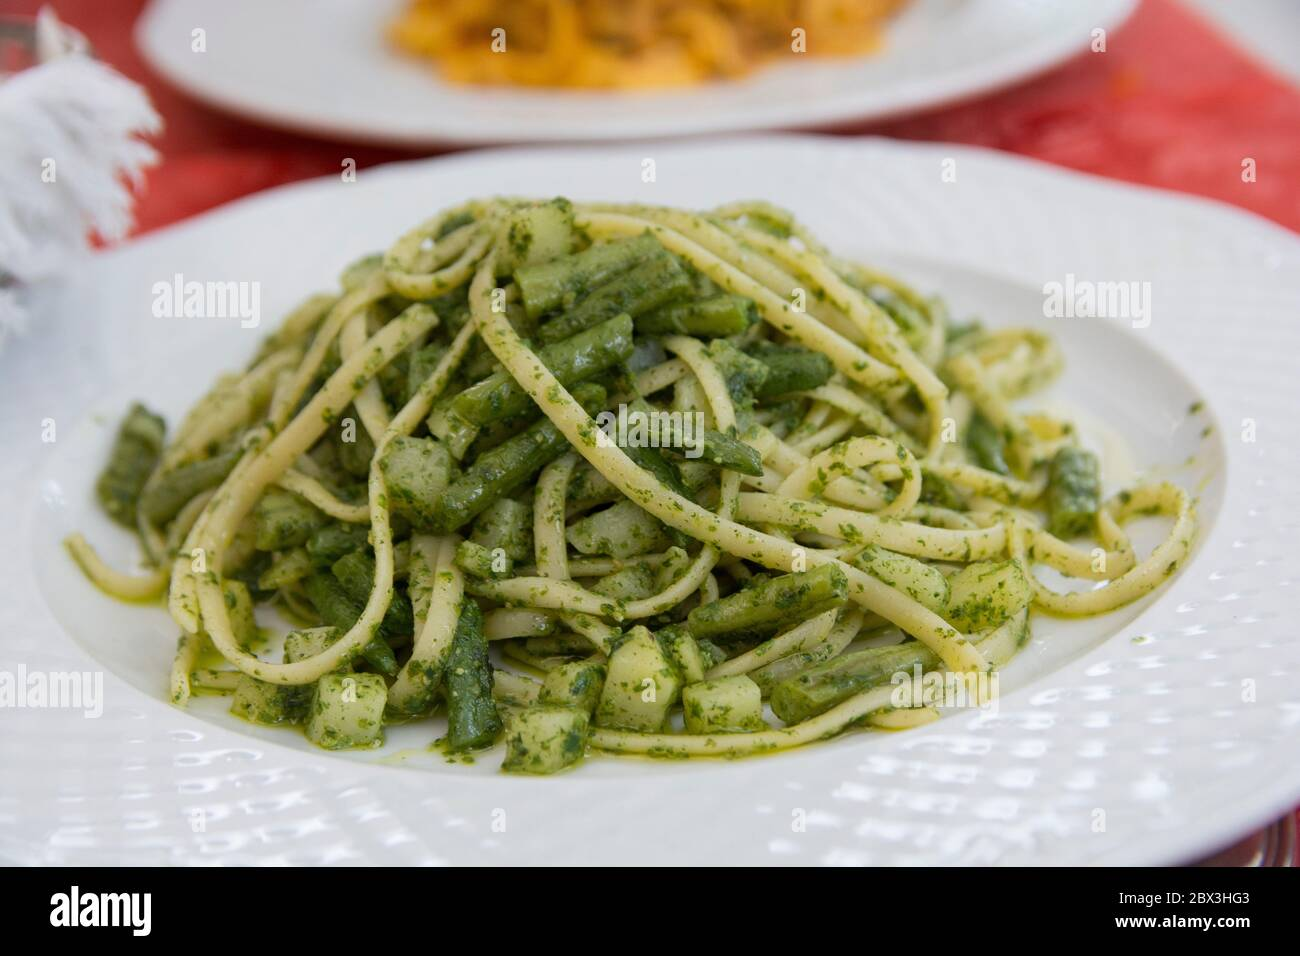 Close up view of a traditional green pasta dish: green Spaghetti with green bean and zucchini, served in a white plate Stock Photo